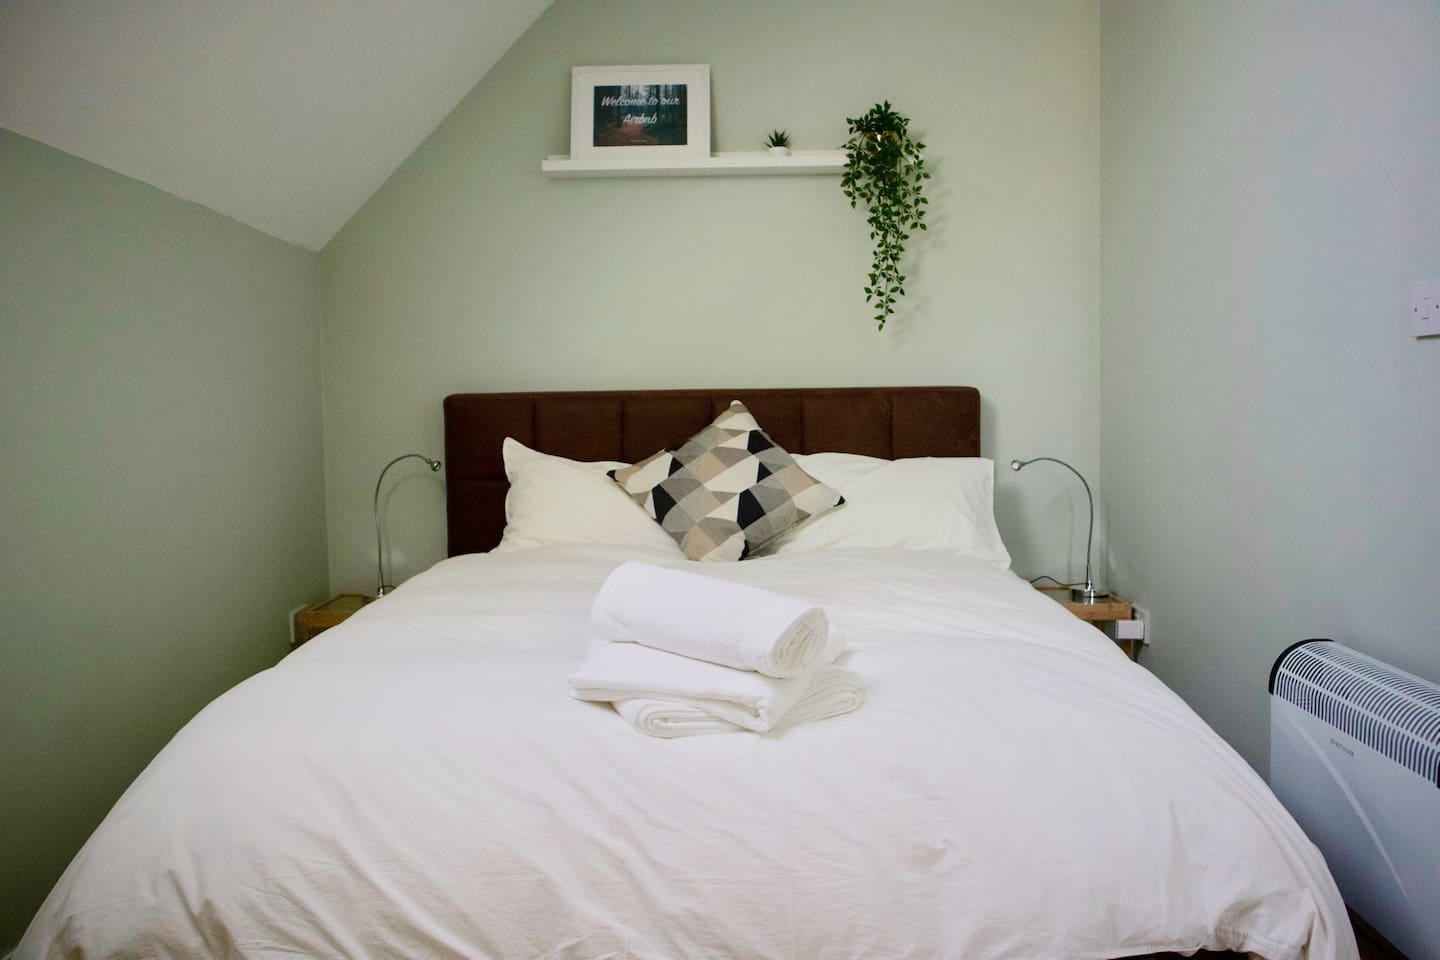 Bright clean space with orthopaedic king size bed.